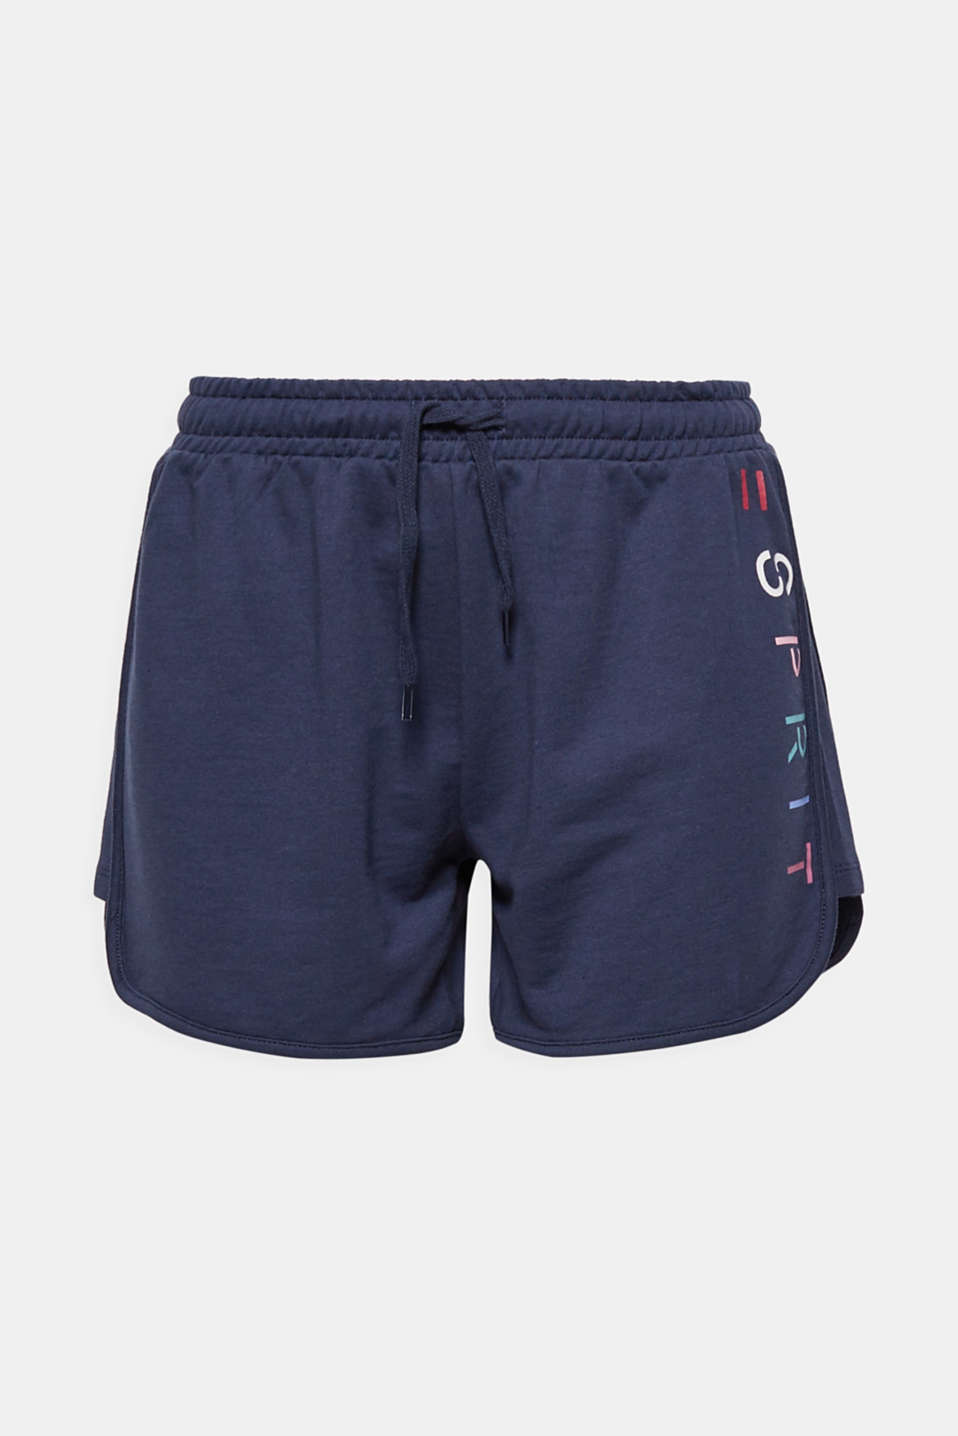 Sporty and authentic with a colourful logo print: jersey shorts made of pure cotton!